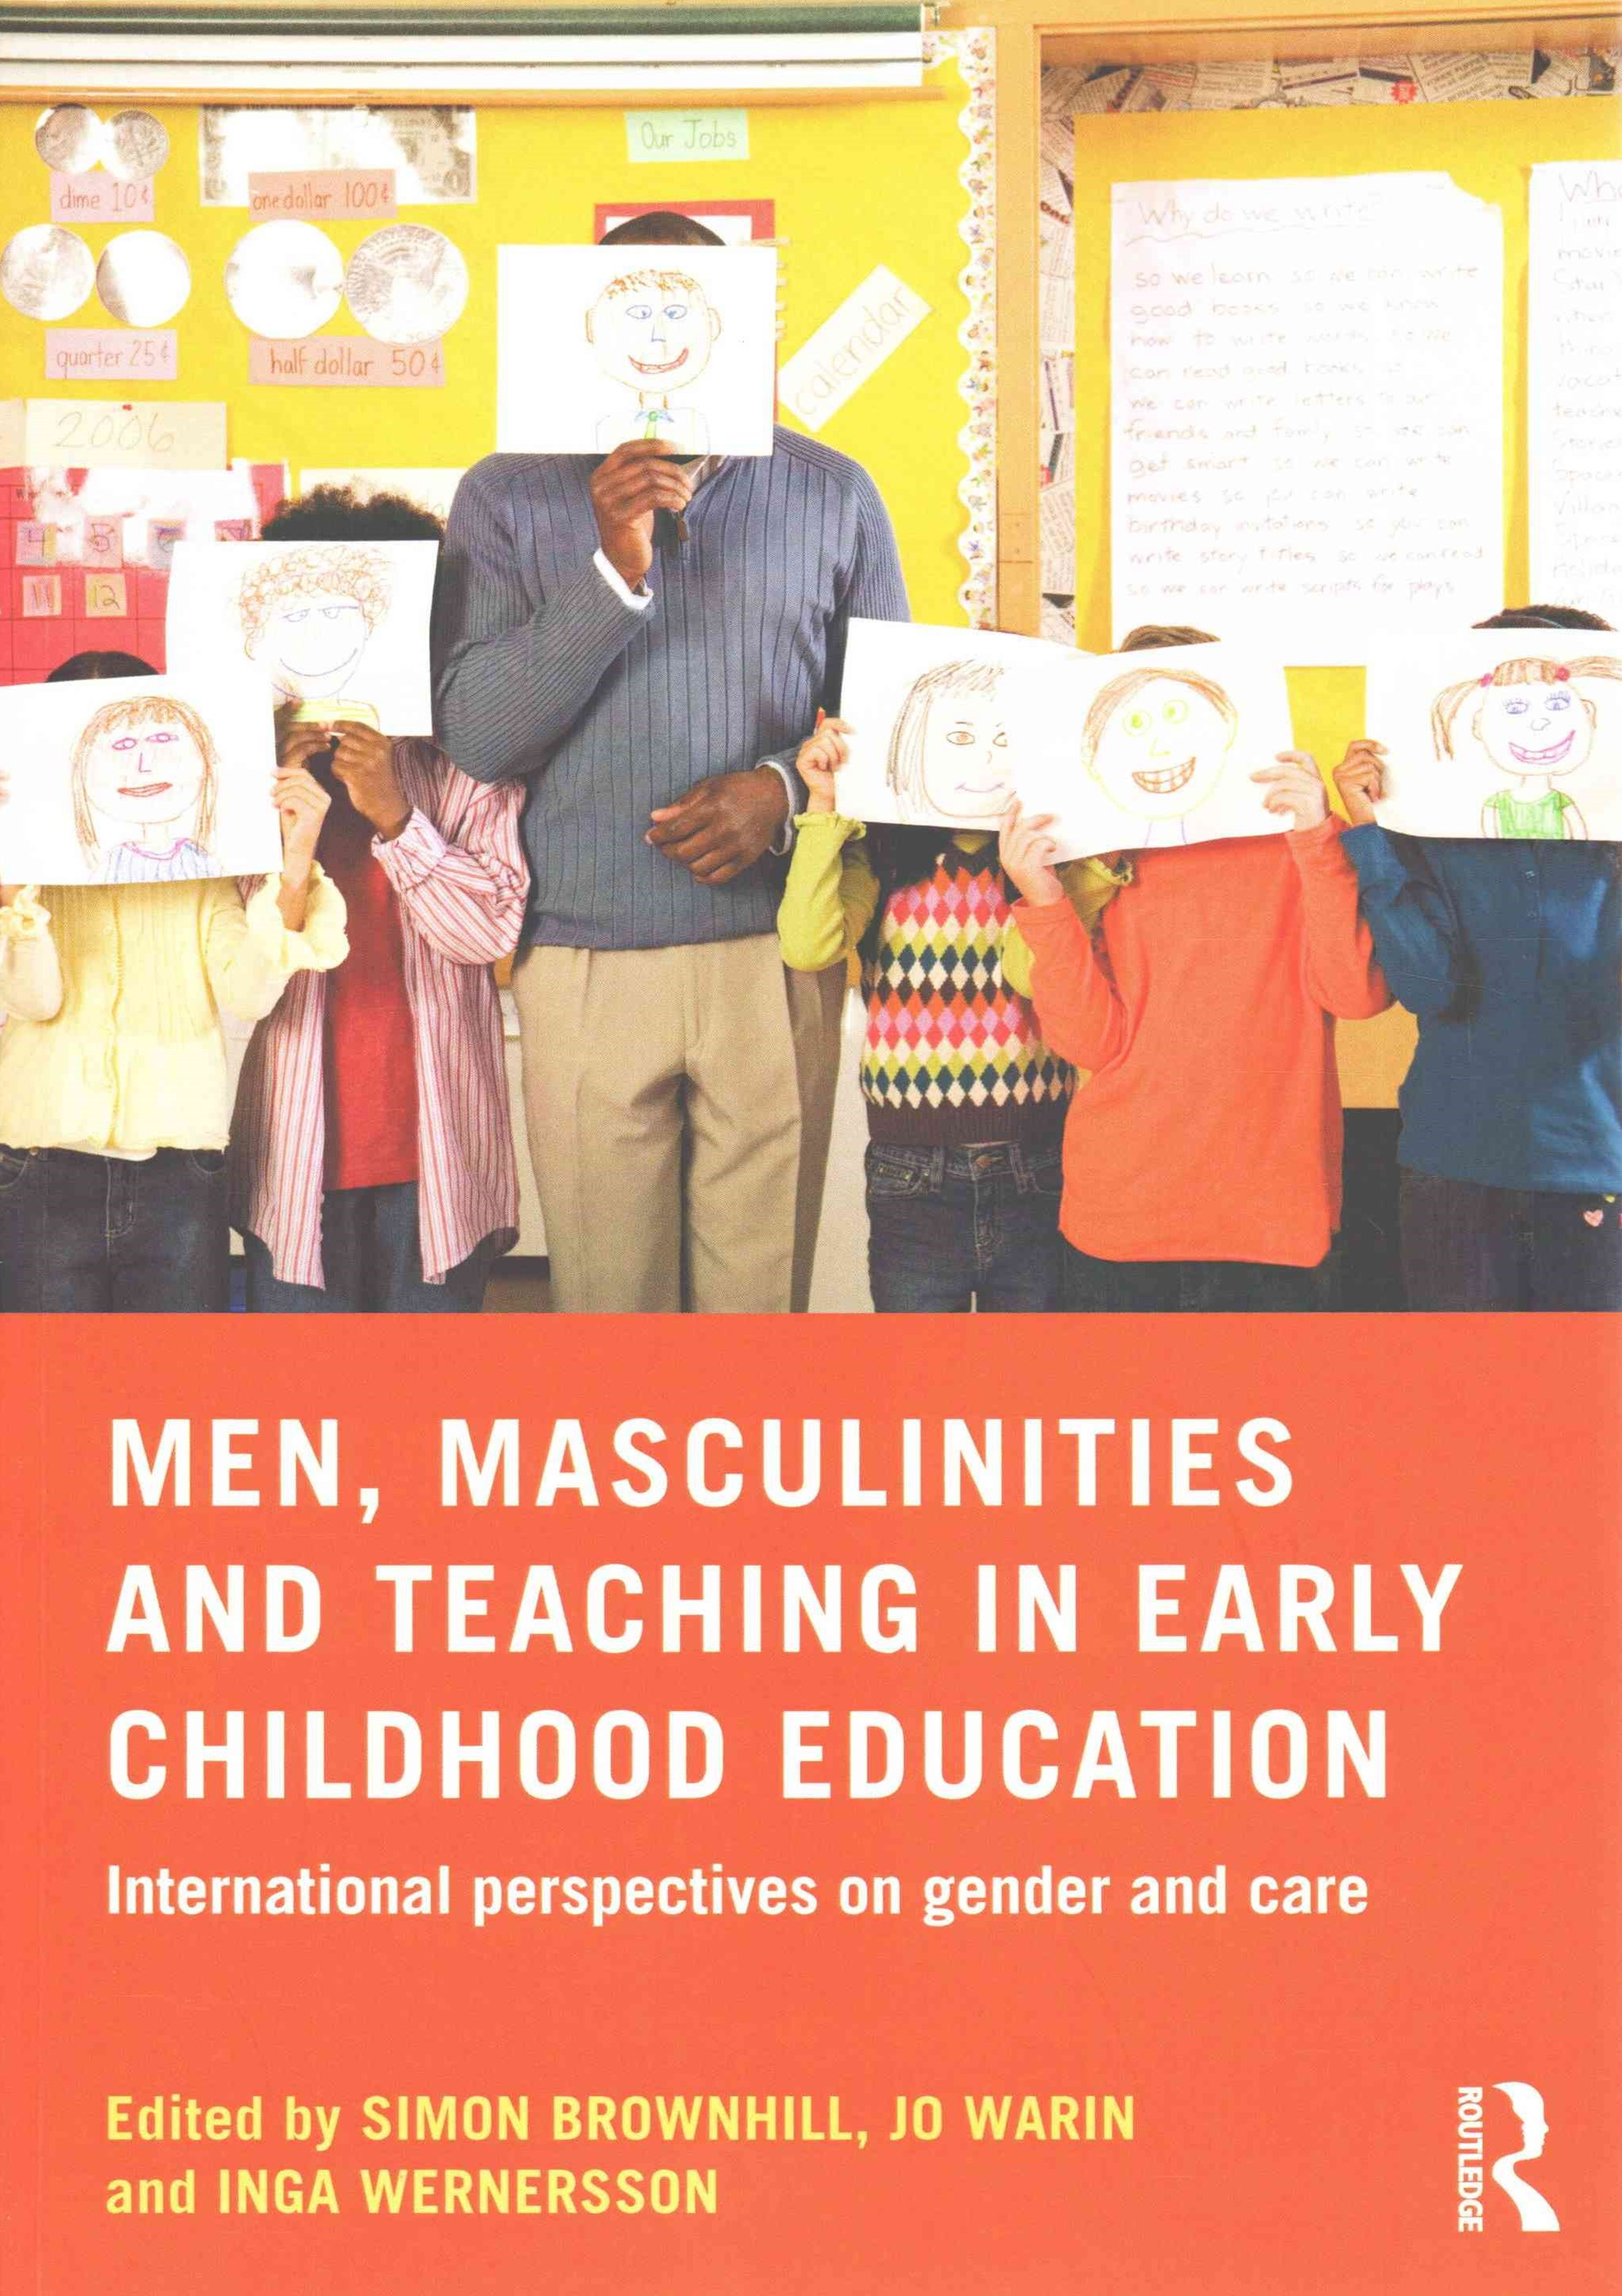 Men, Masculinities and Teaching in Early Childhood Education